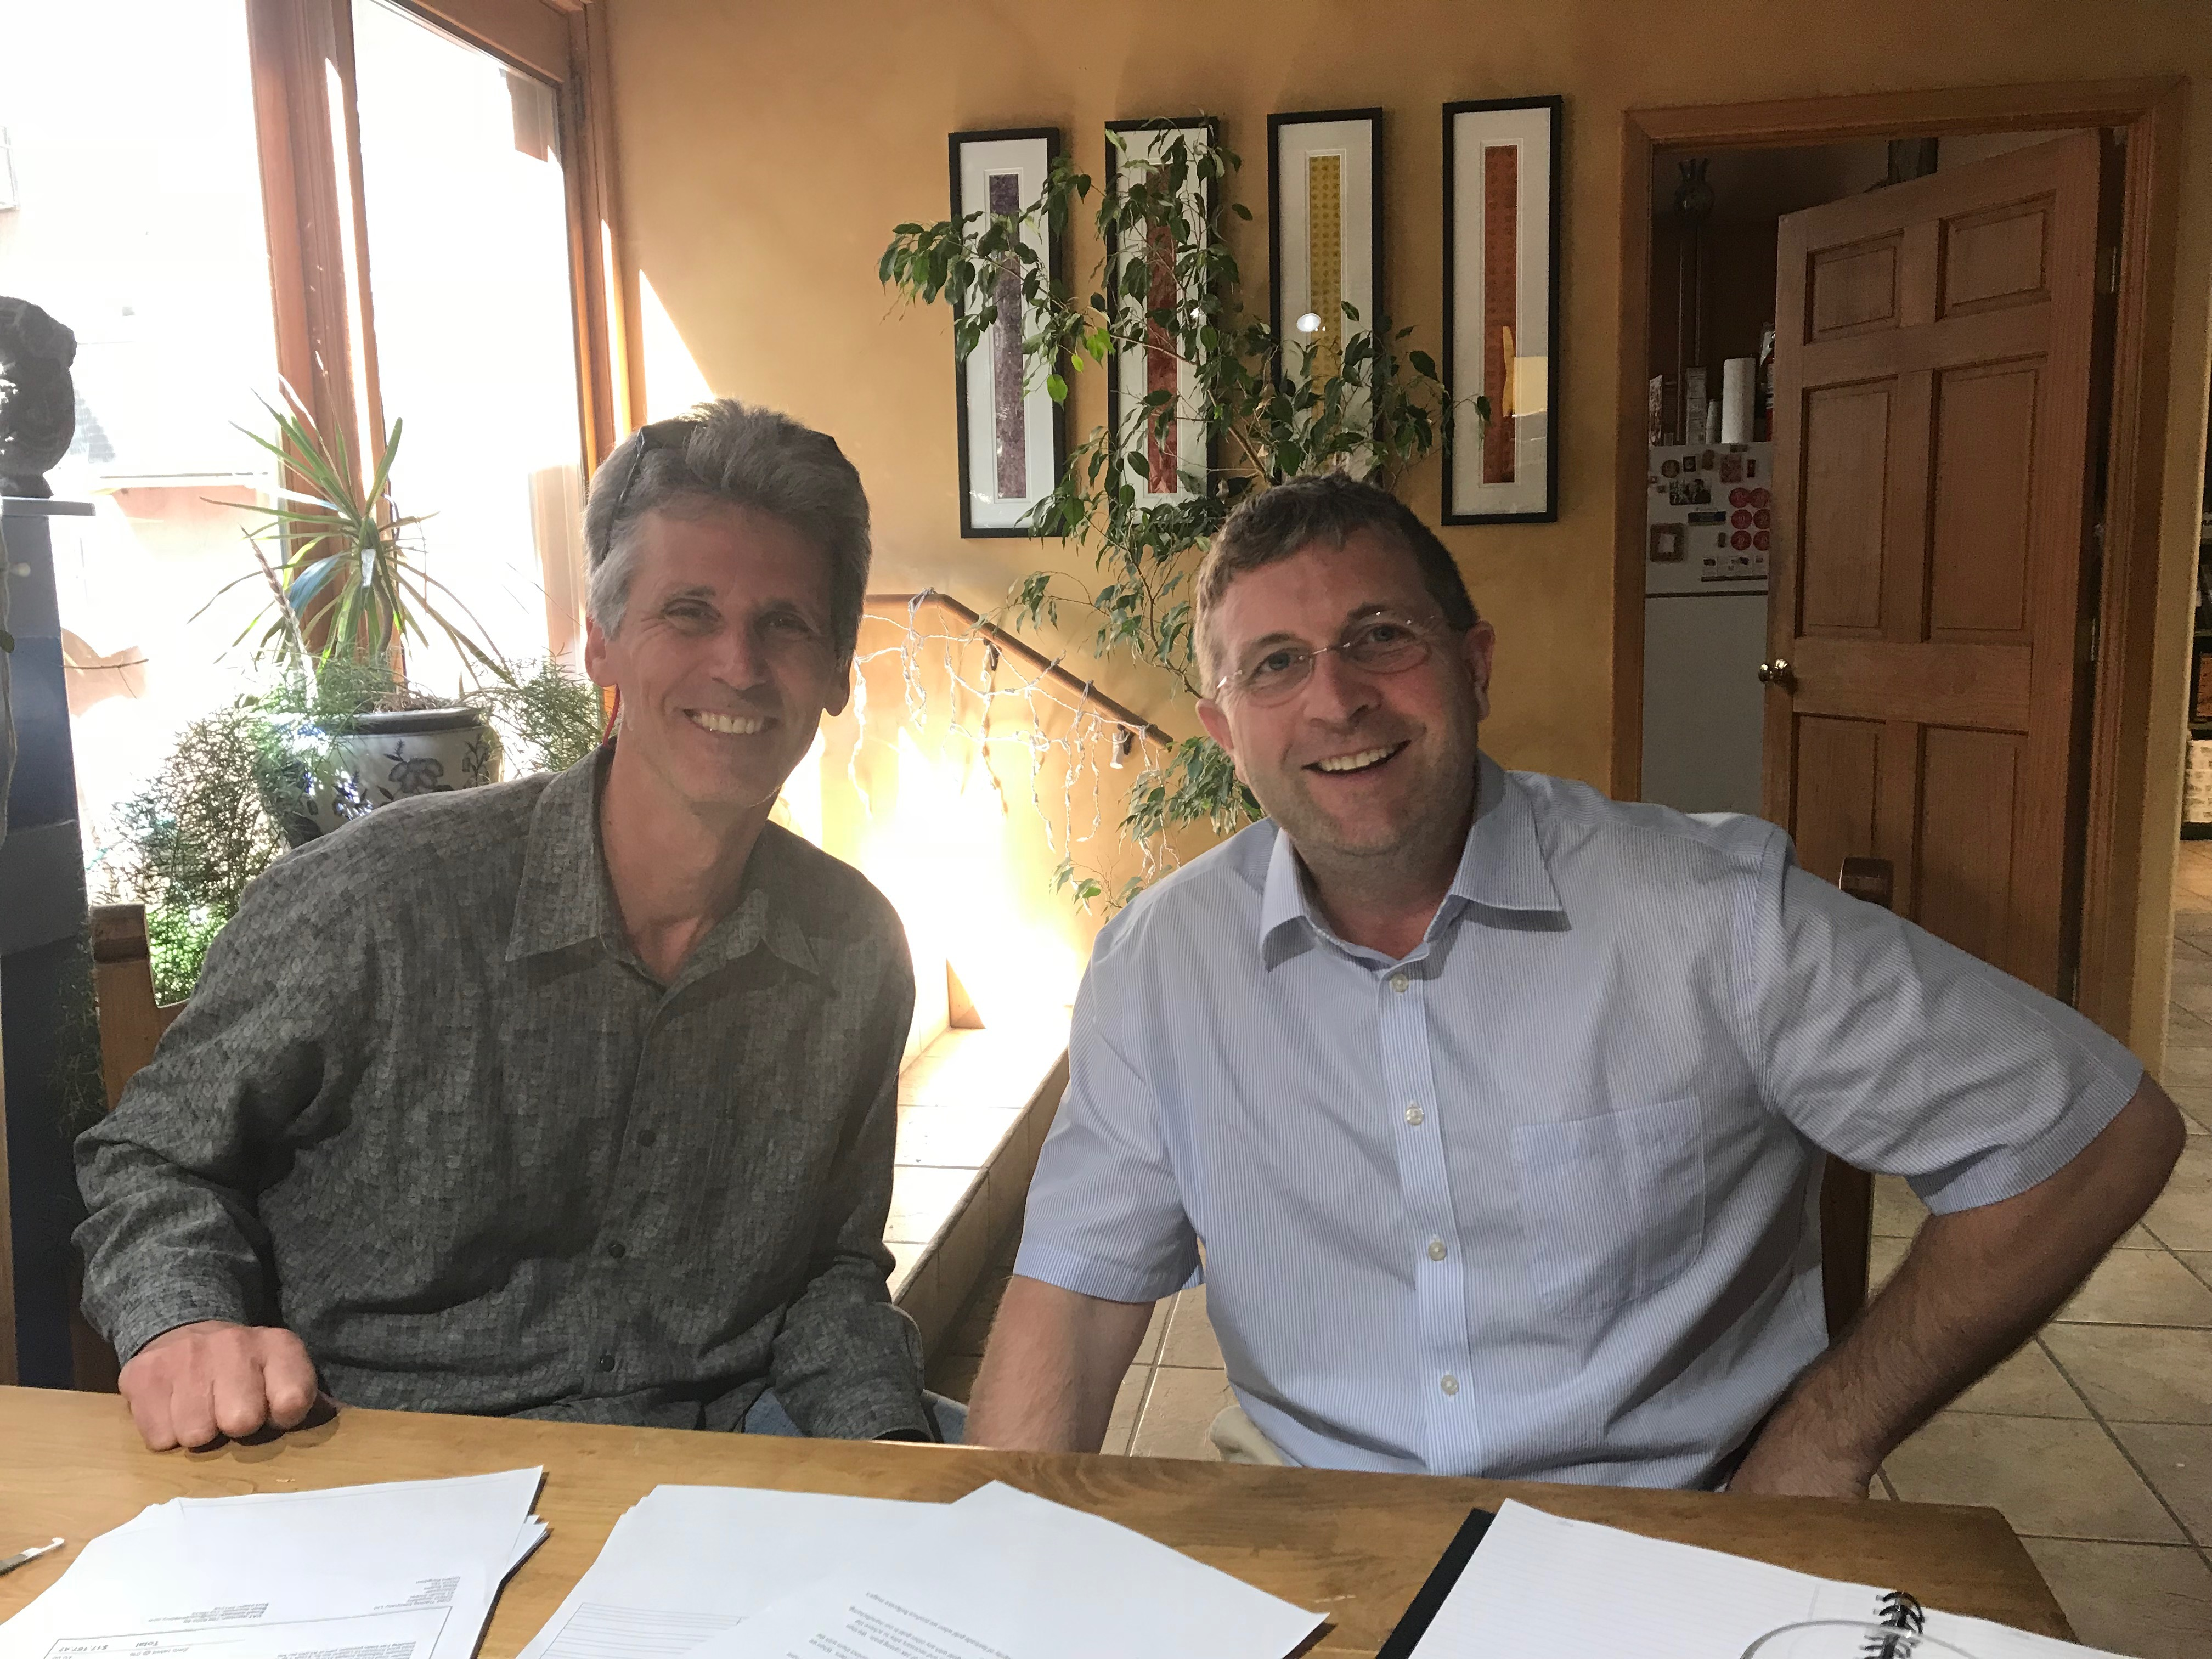 Marc Choyt, co-owner and President of Reflective Jewelry, left, is pictured here with Mark Carroll of FLOCert (associated with Fairtrade International.). Carroll flew to our Santa Fe, NM studio to conduct an audit of our Fairtrade Gold supply.